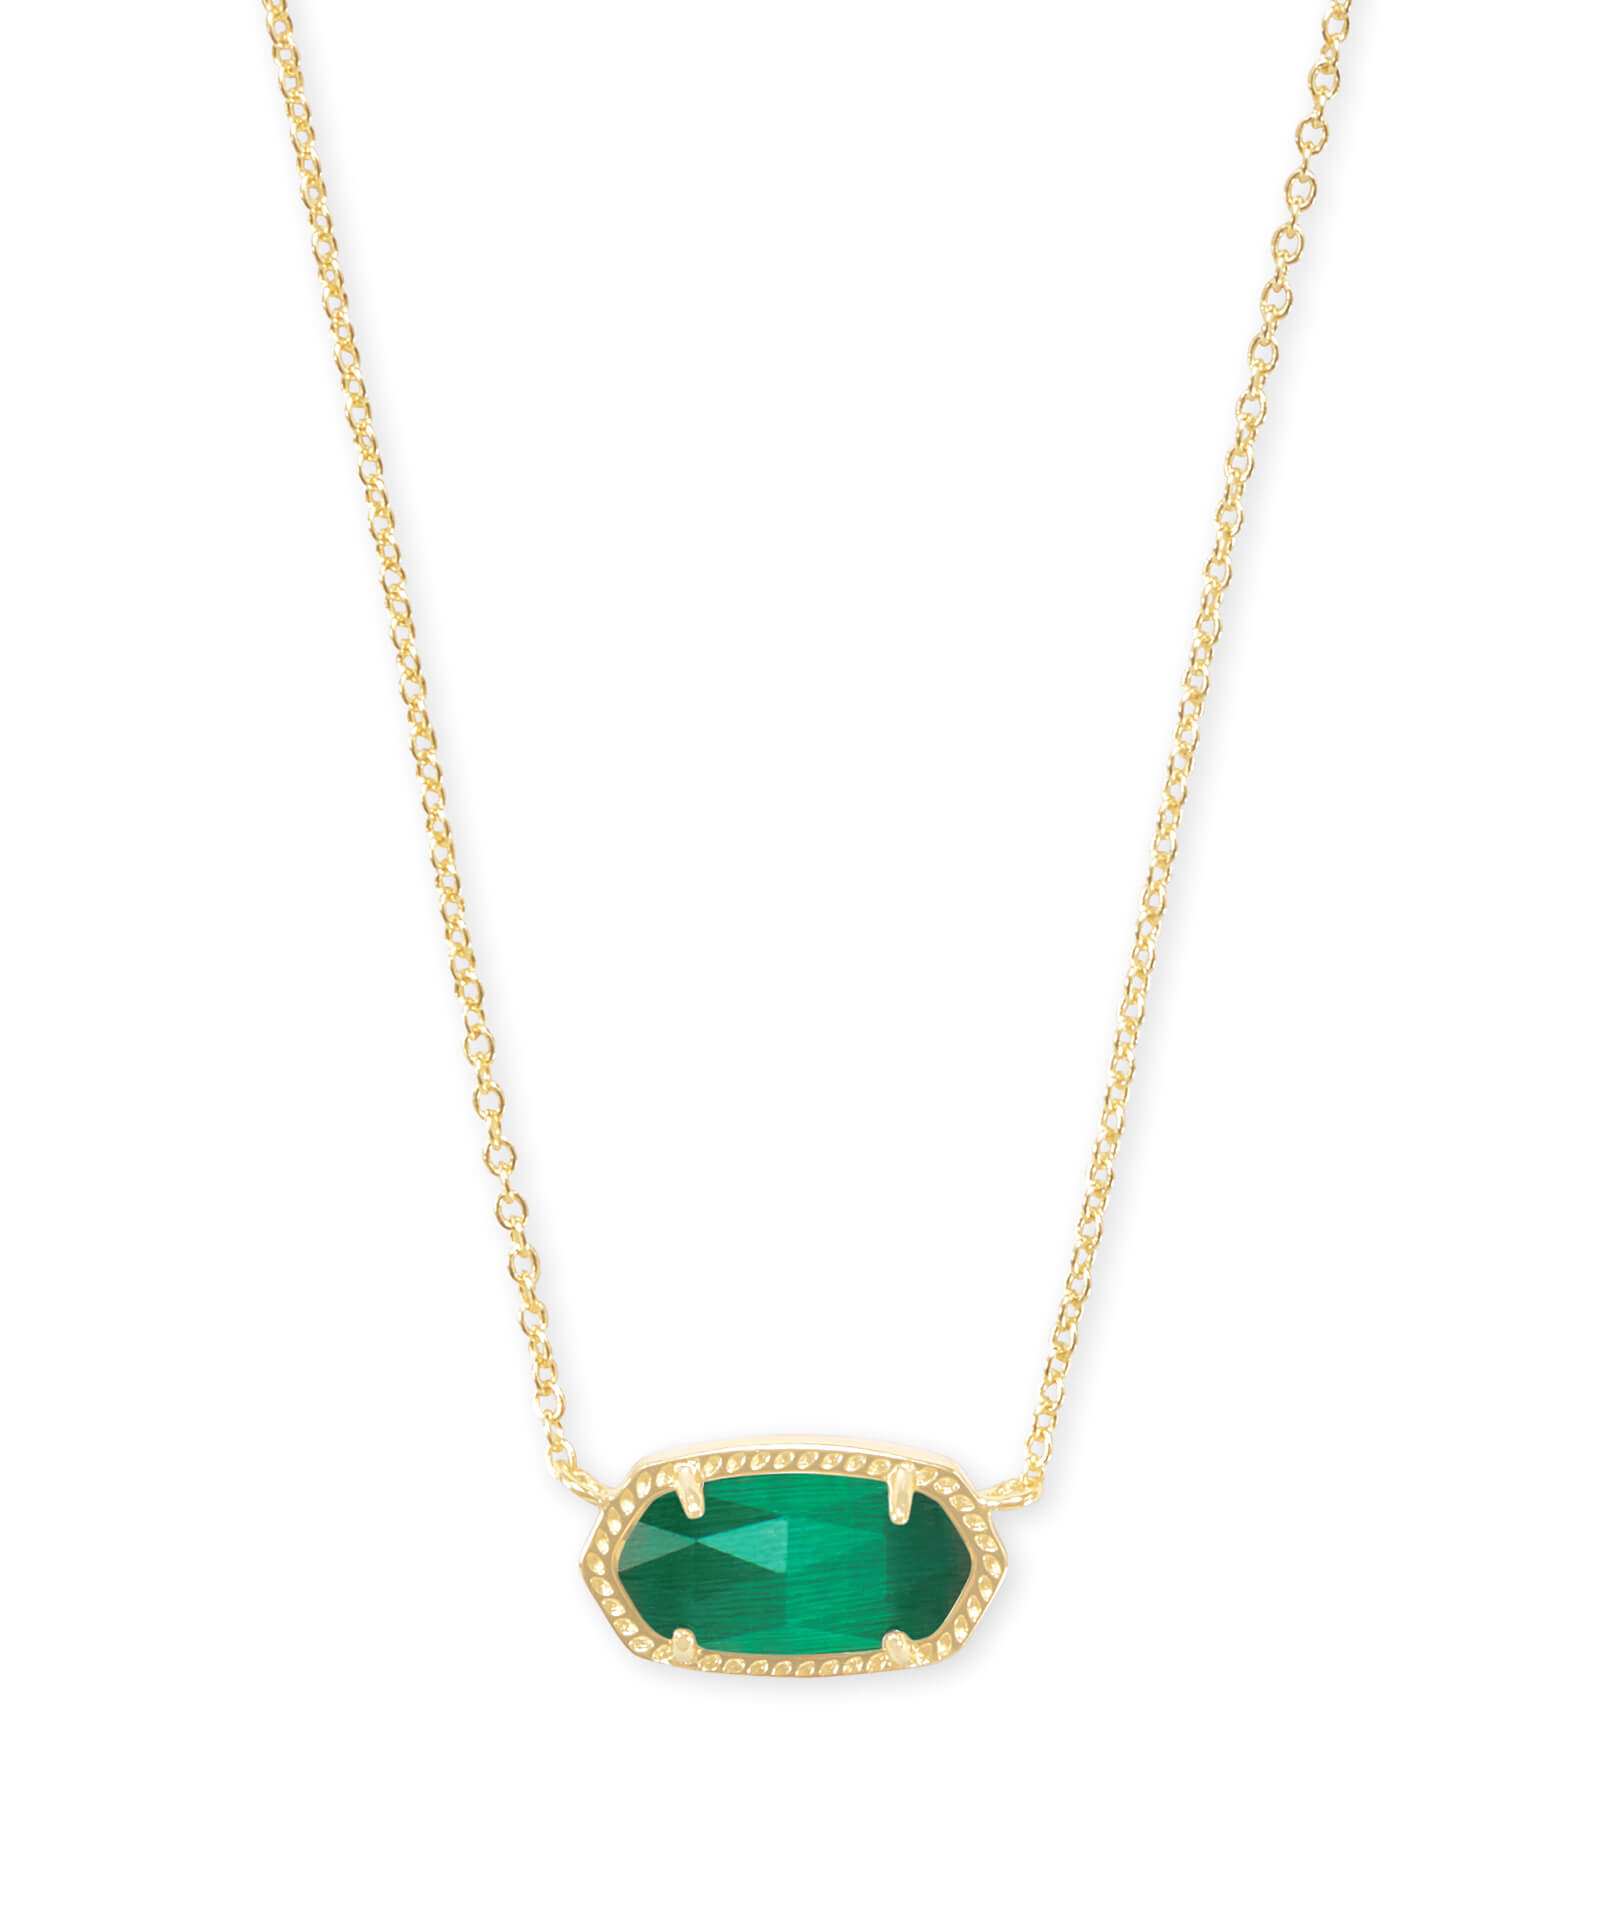 Elisa Gold Pendant Necklace In Emerald Cat's Eye | Kendra Scott Within Most Popular Royal Green Crystal May Droplet Pendant Necklaces (View 8 of 25)